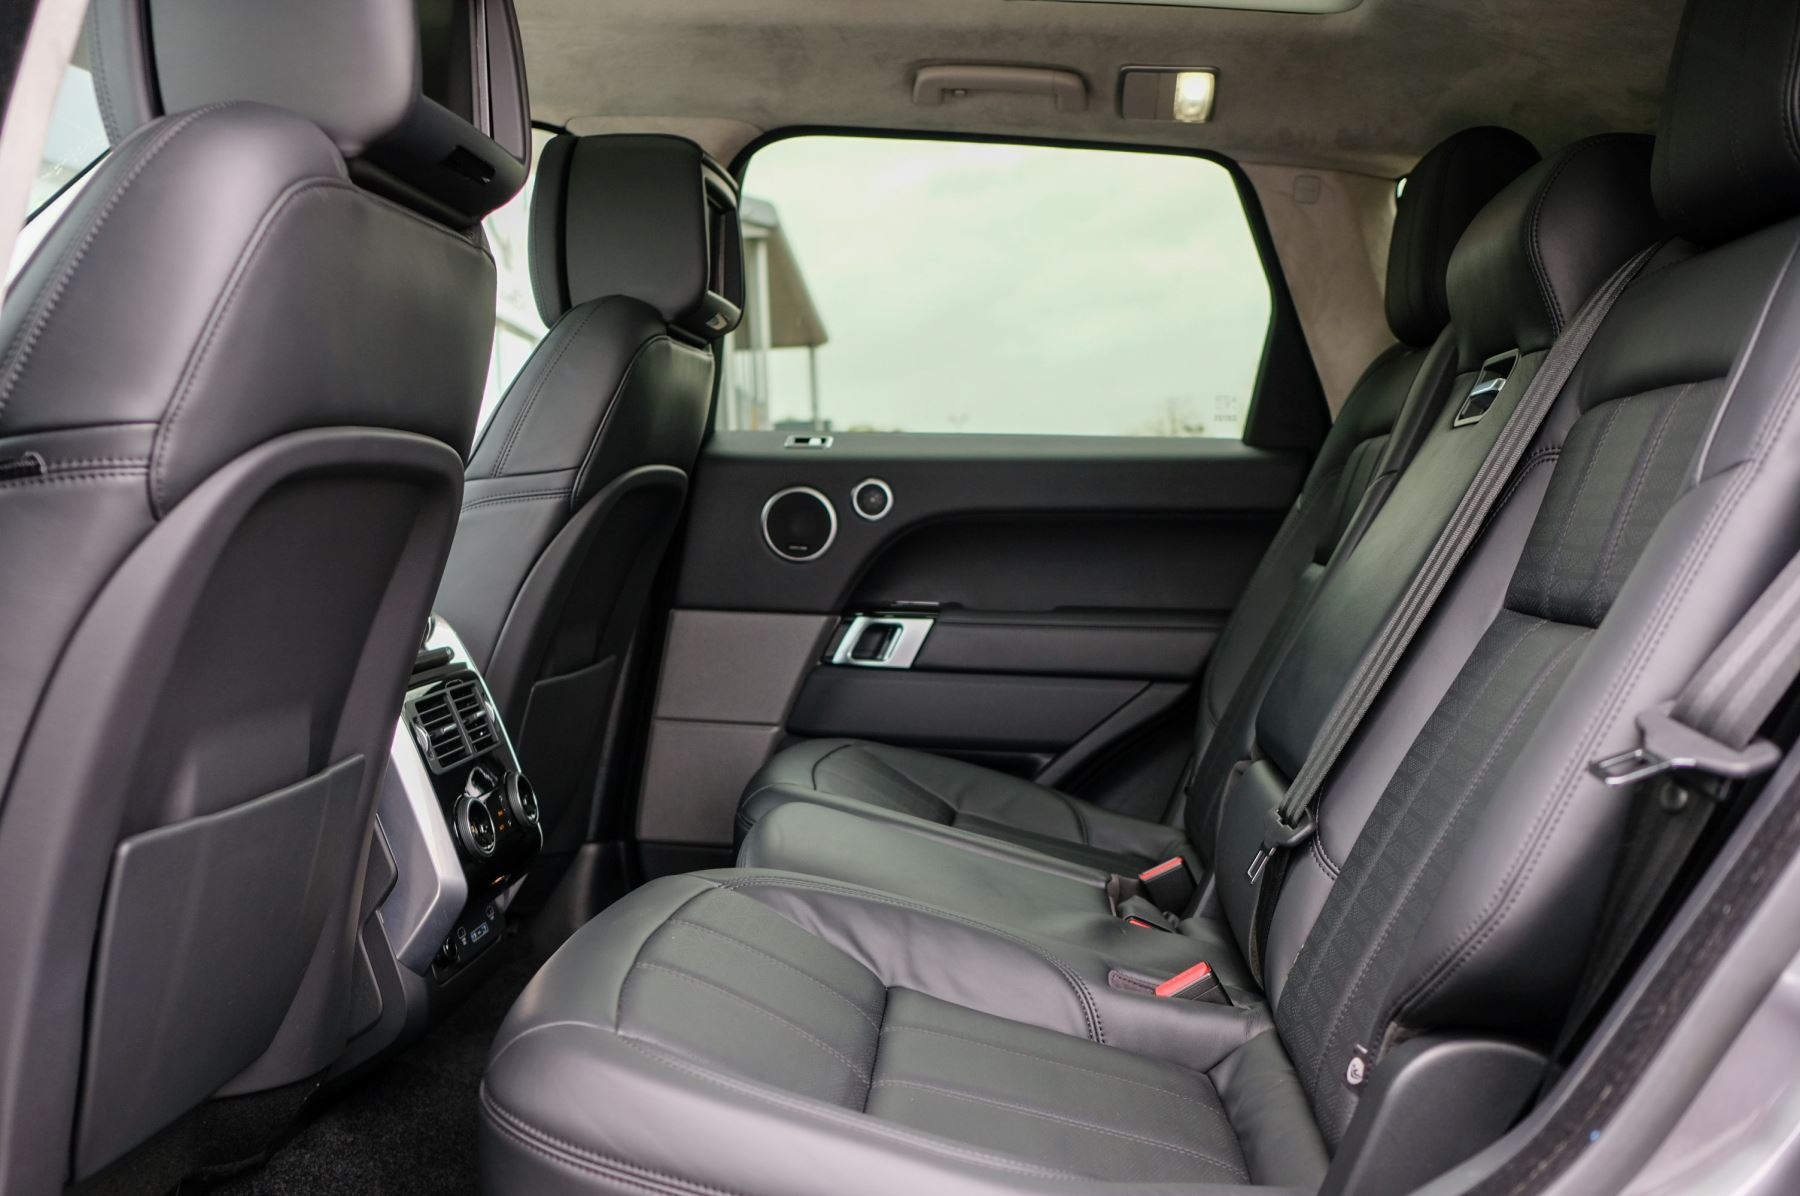 Land Rover Range Rover Sport 3.0 SDV6 Autobiography Dynamic 5dr [7 Seat] - Rear Seat Entertainment - 21 Inch Alloys image 15